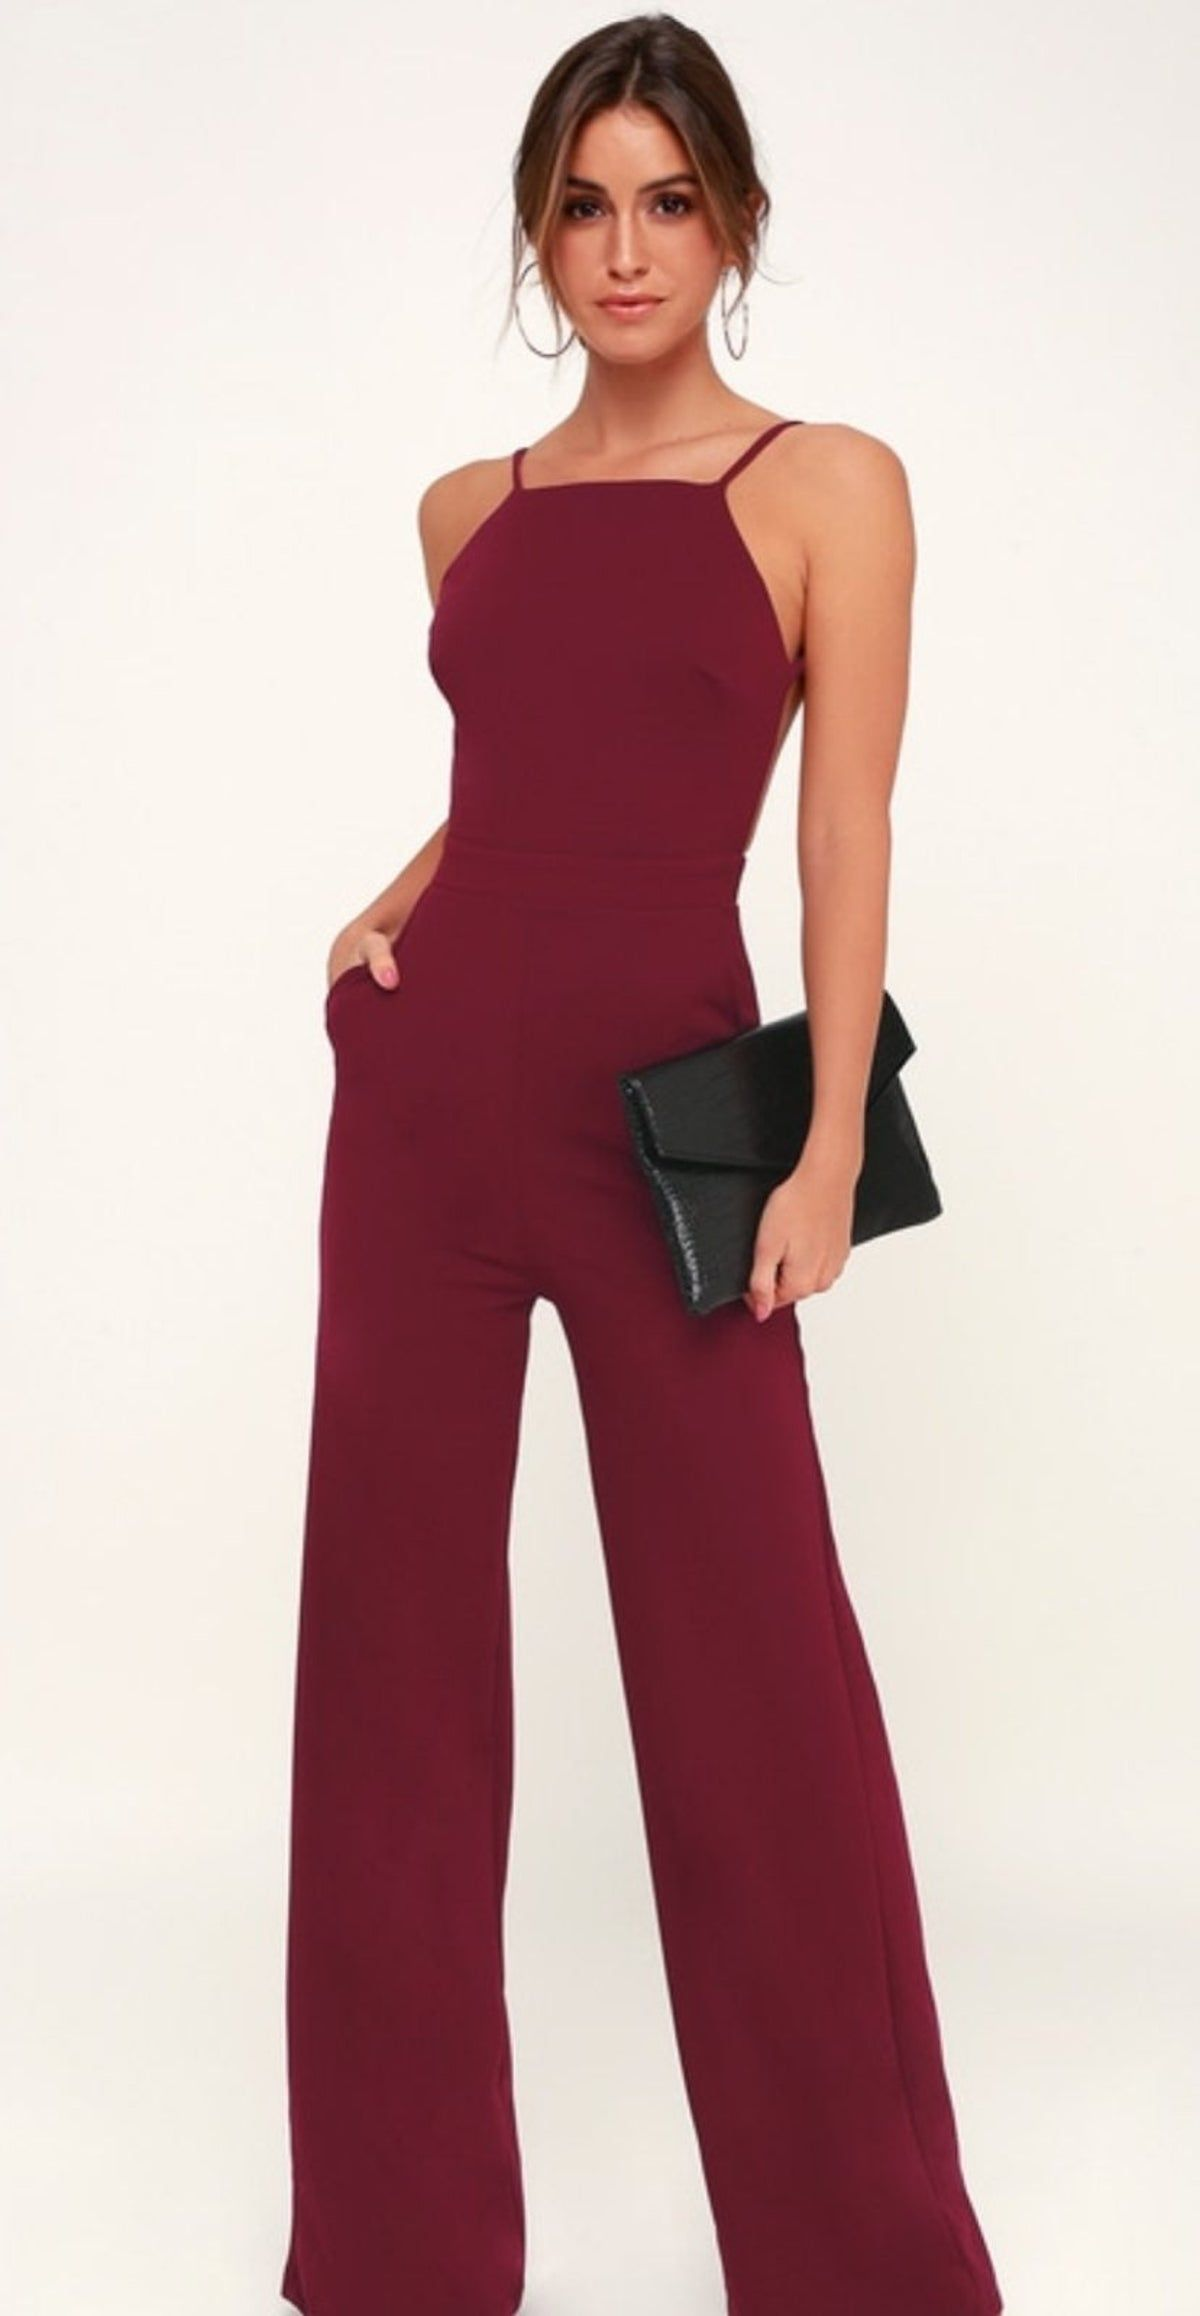 Power Of Love Wine Jumpsuit In 2020 Classy Jumpsuits For Weddings Classy Jumpsuit Jumpsuit Outfit Wedding